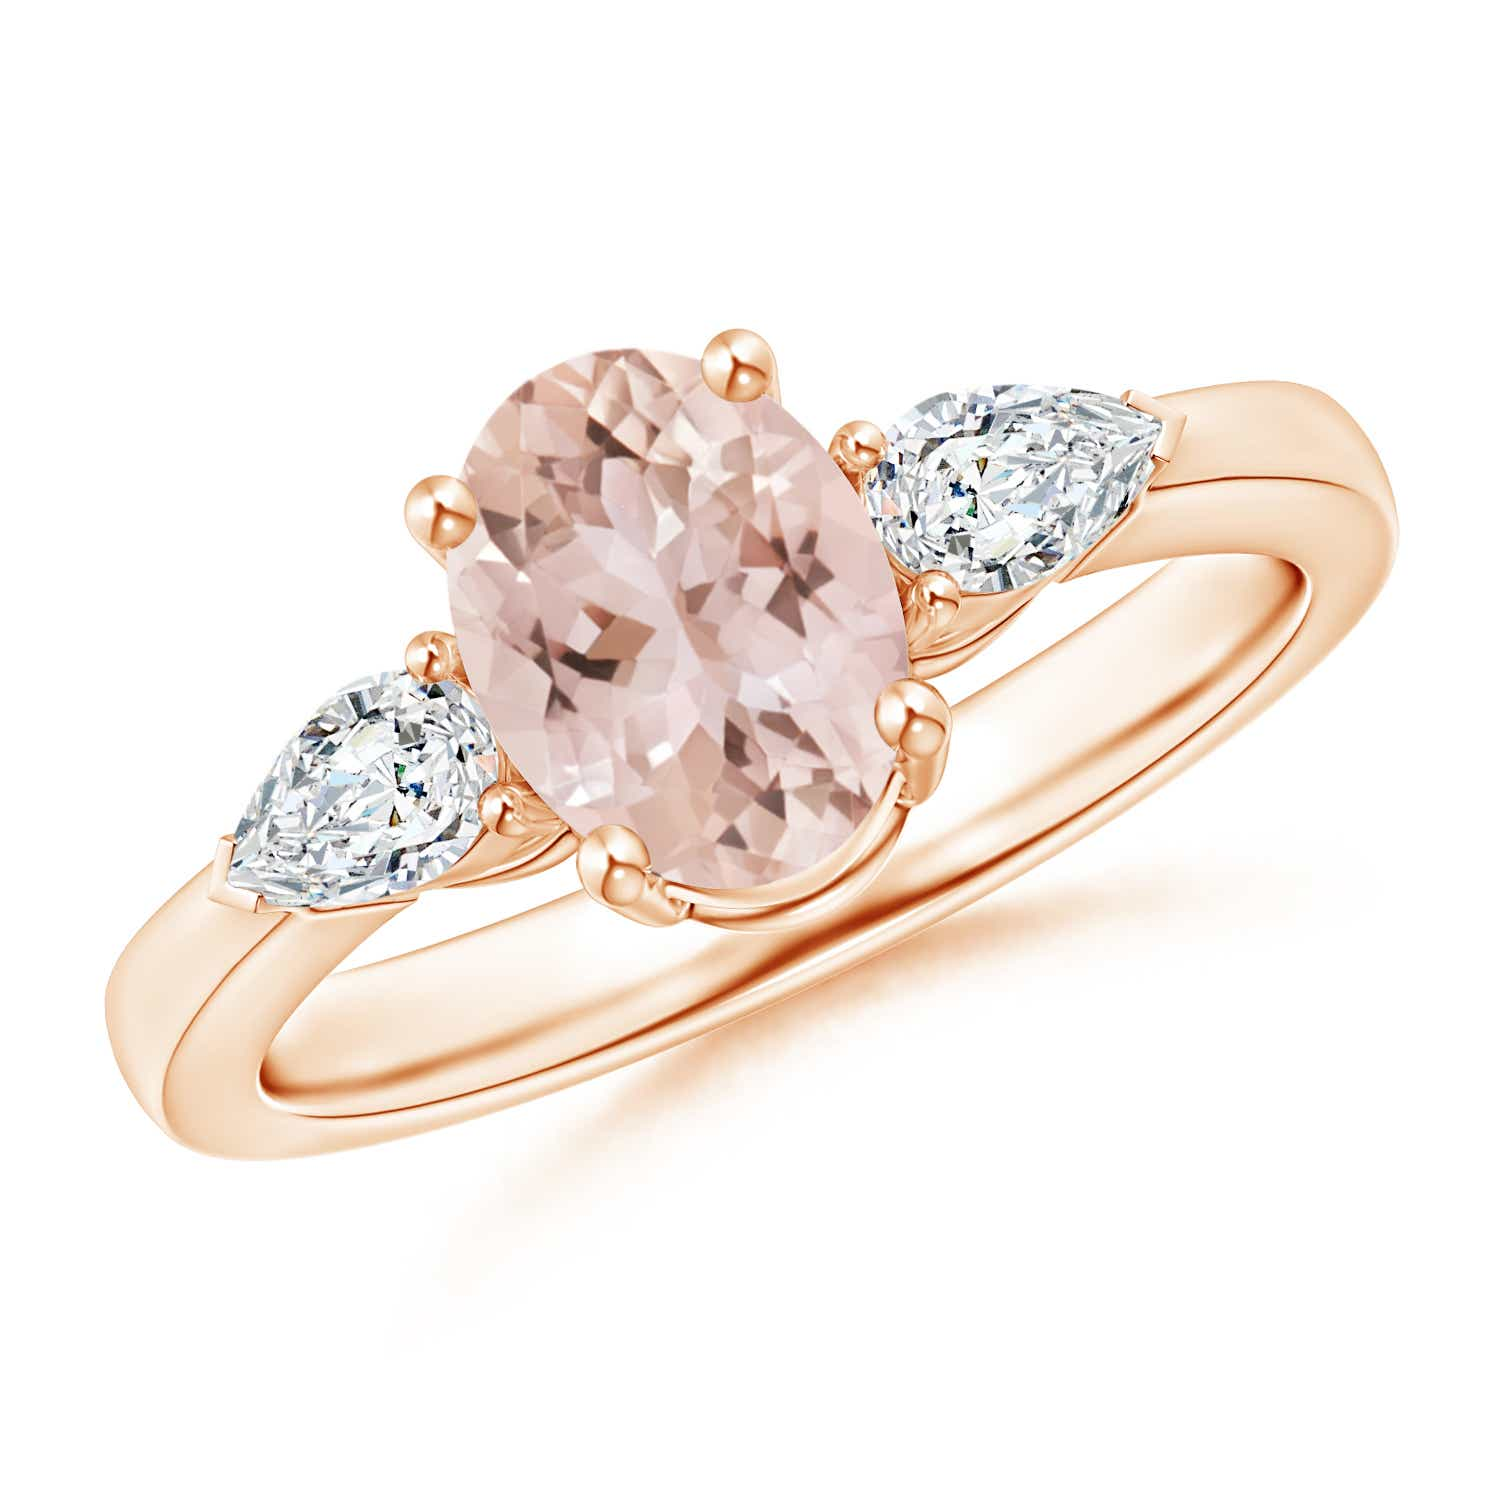 Angara Four Prong Three Stone Oval Morganite and Diamond Ring Y5gQgPoULR